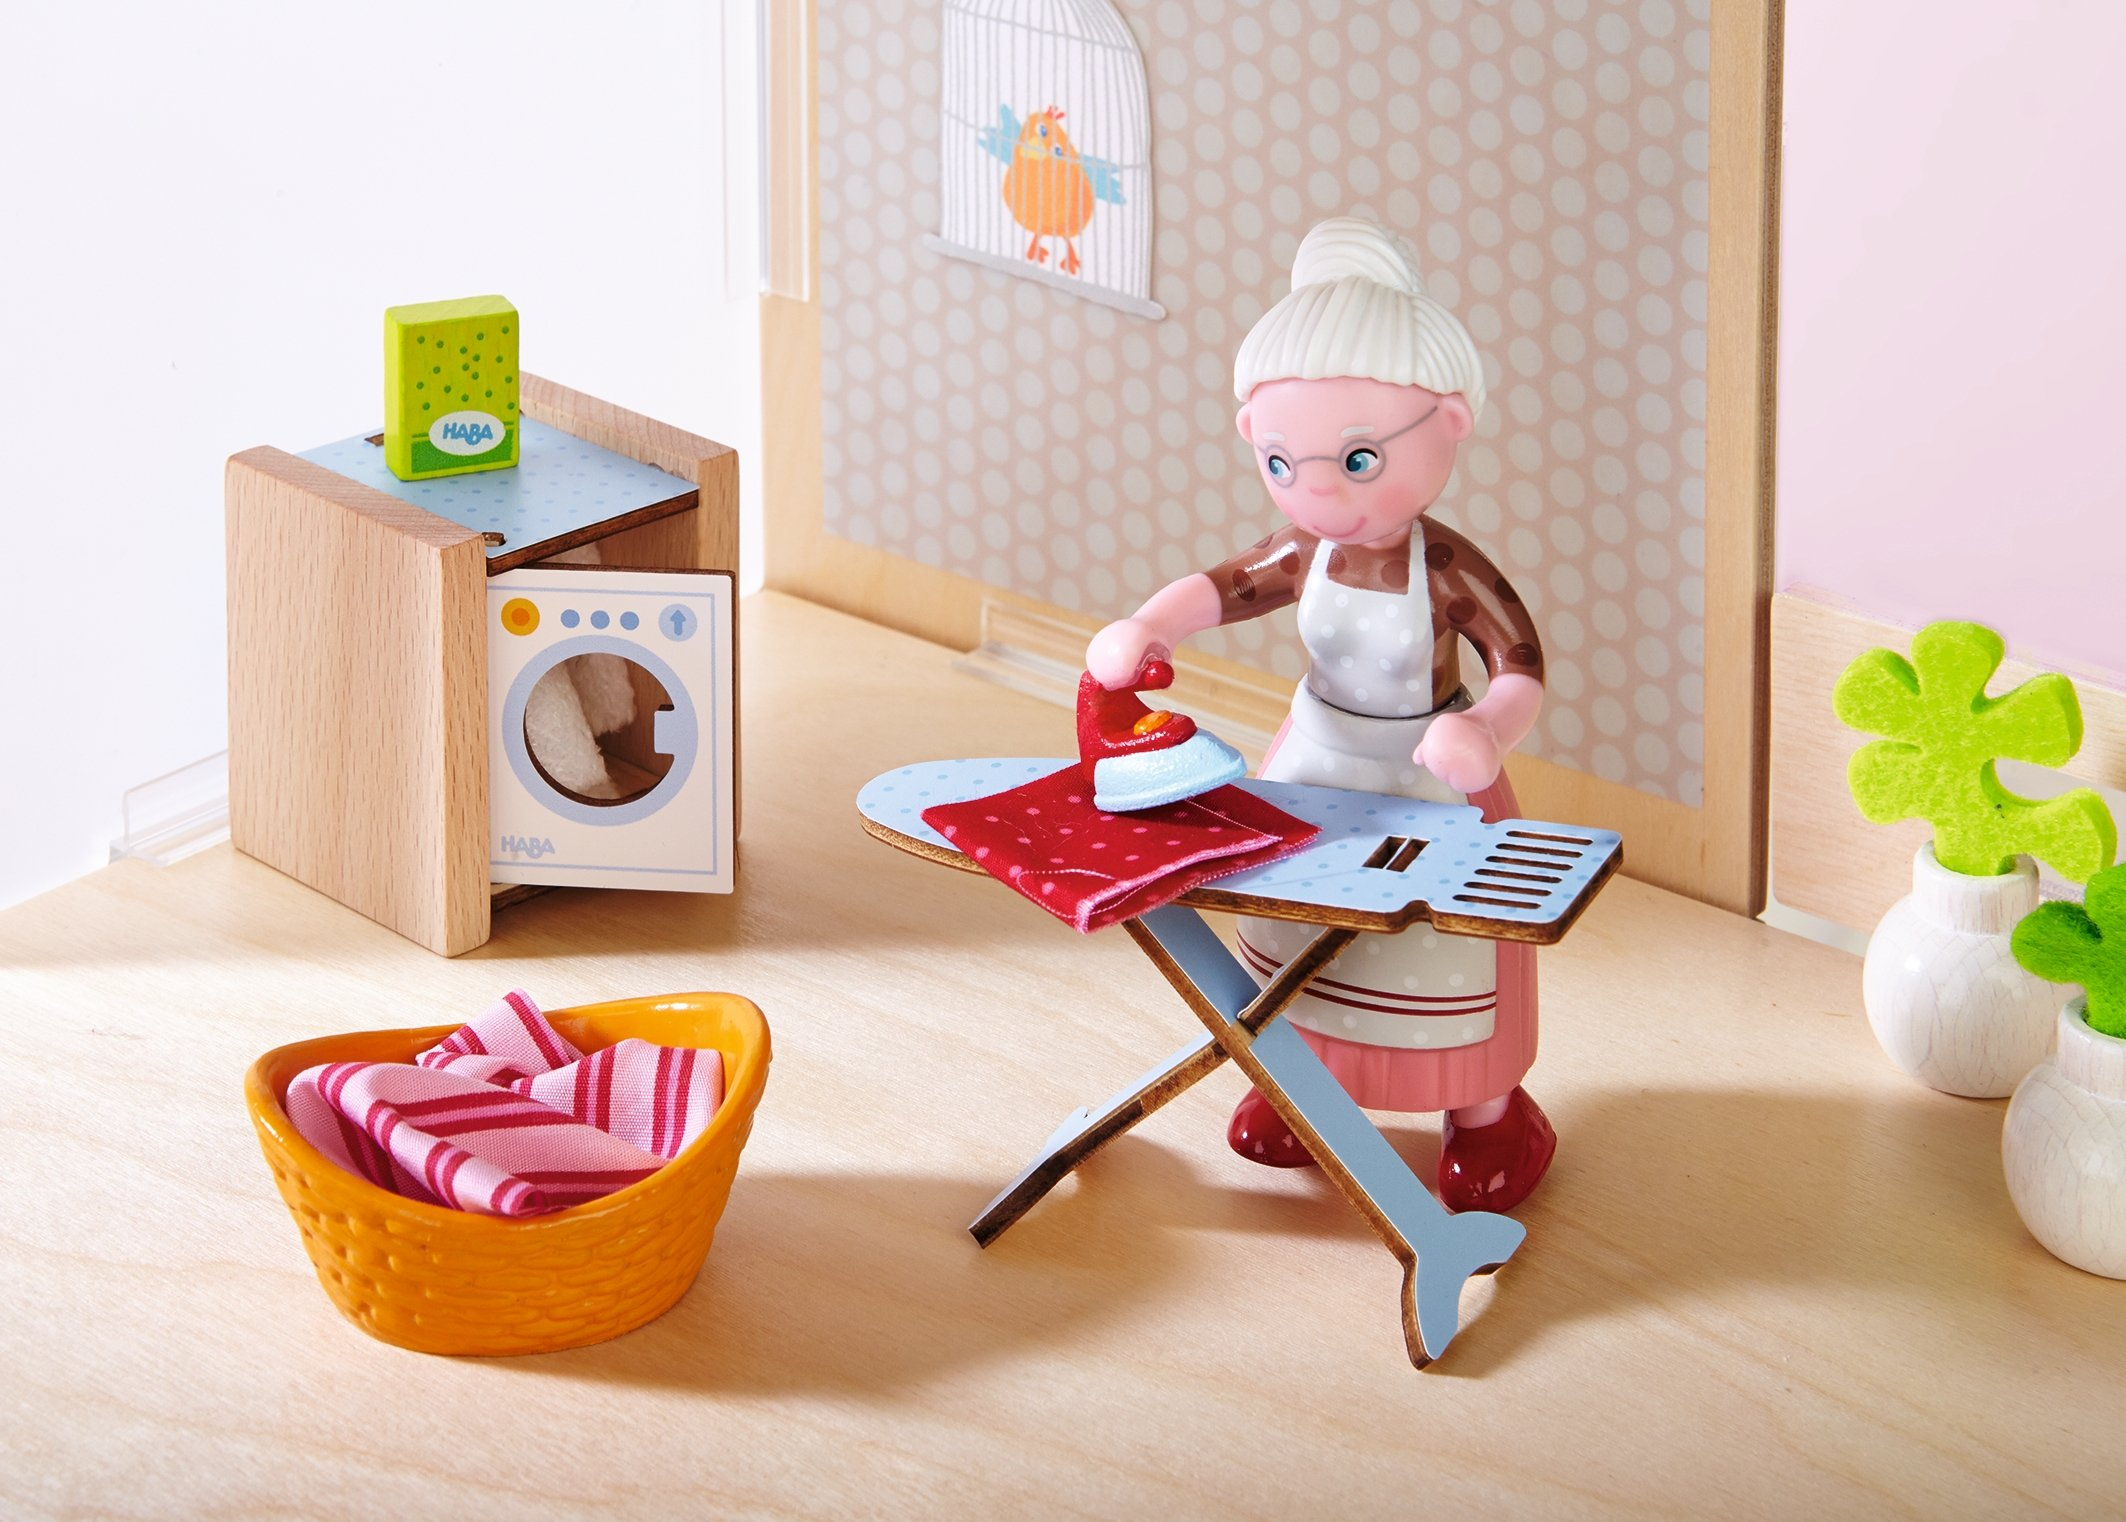 Homestead Collection HABA Litttle Friends Dollhouse Furniture